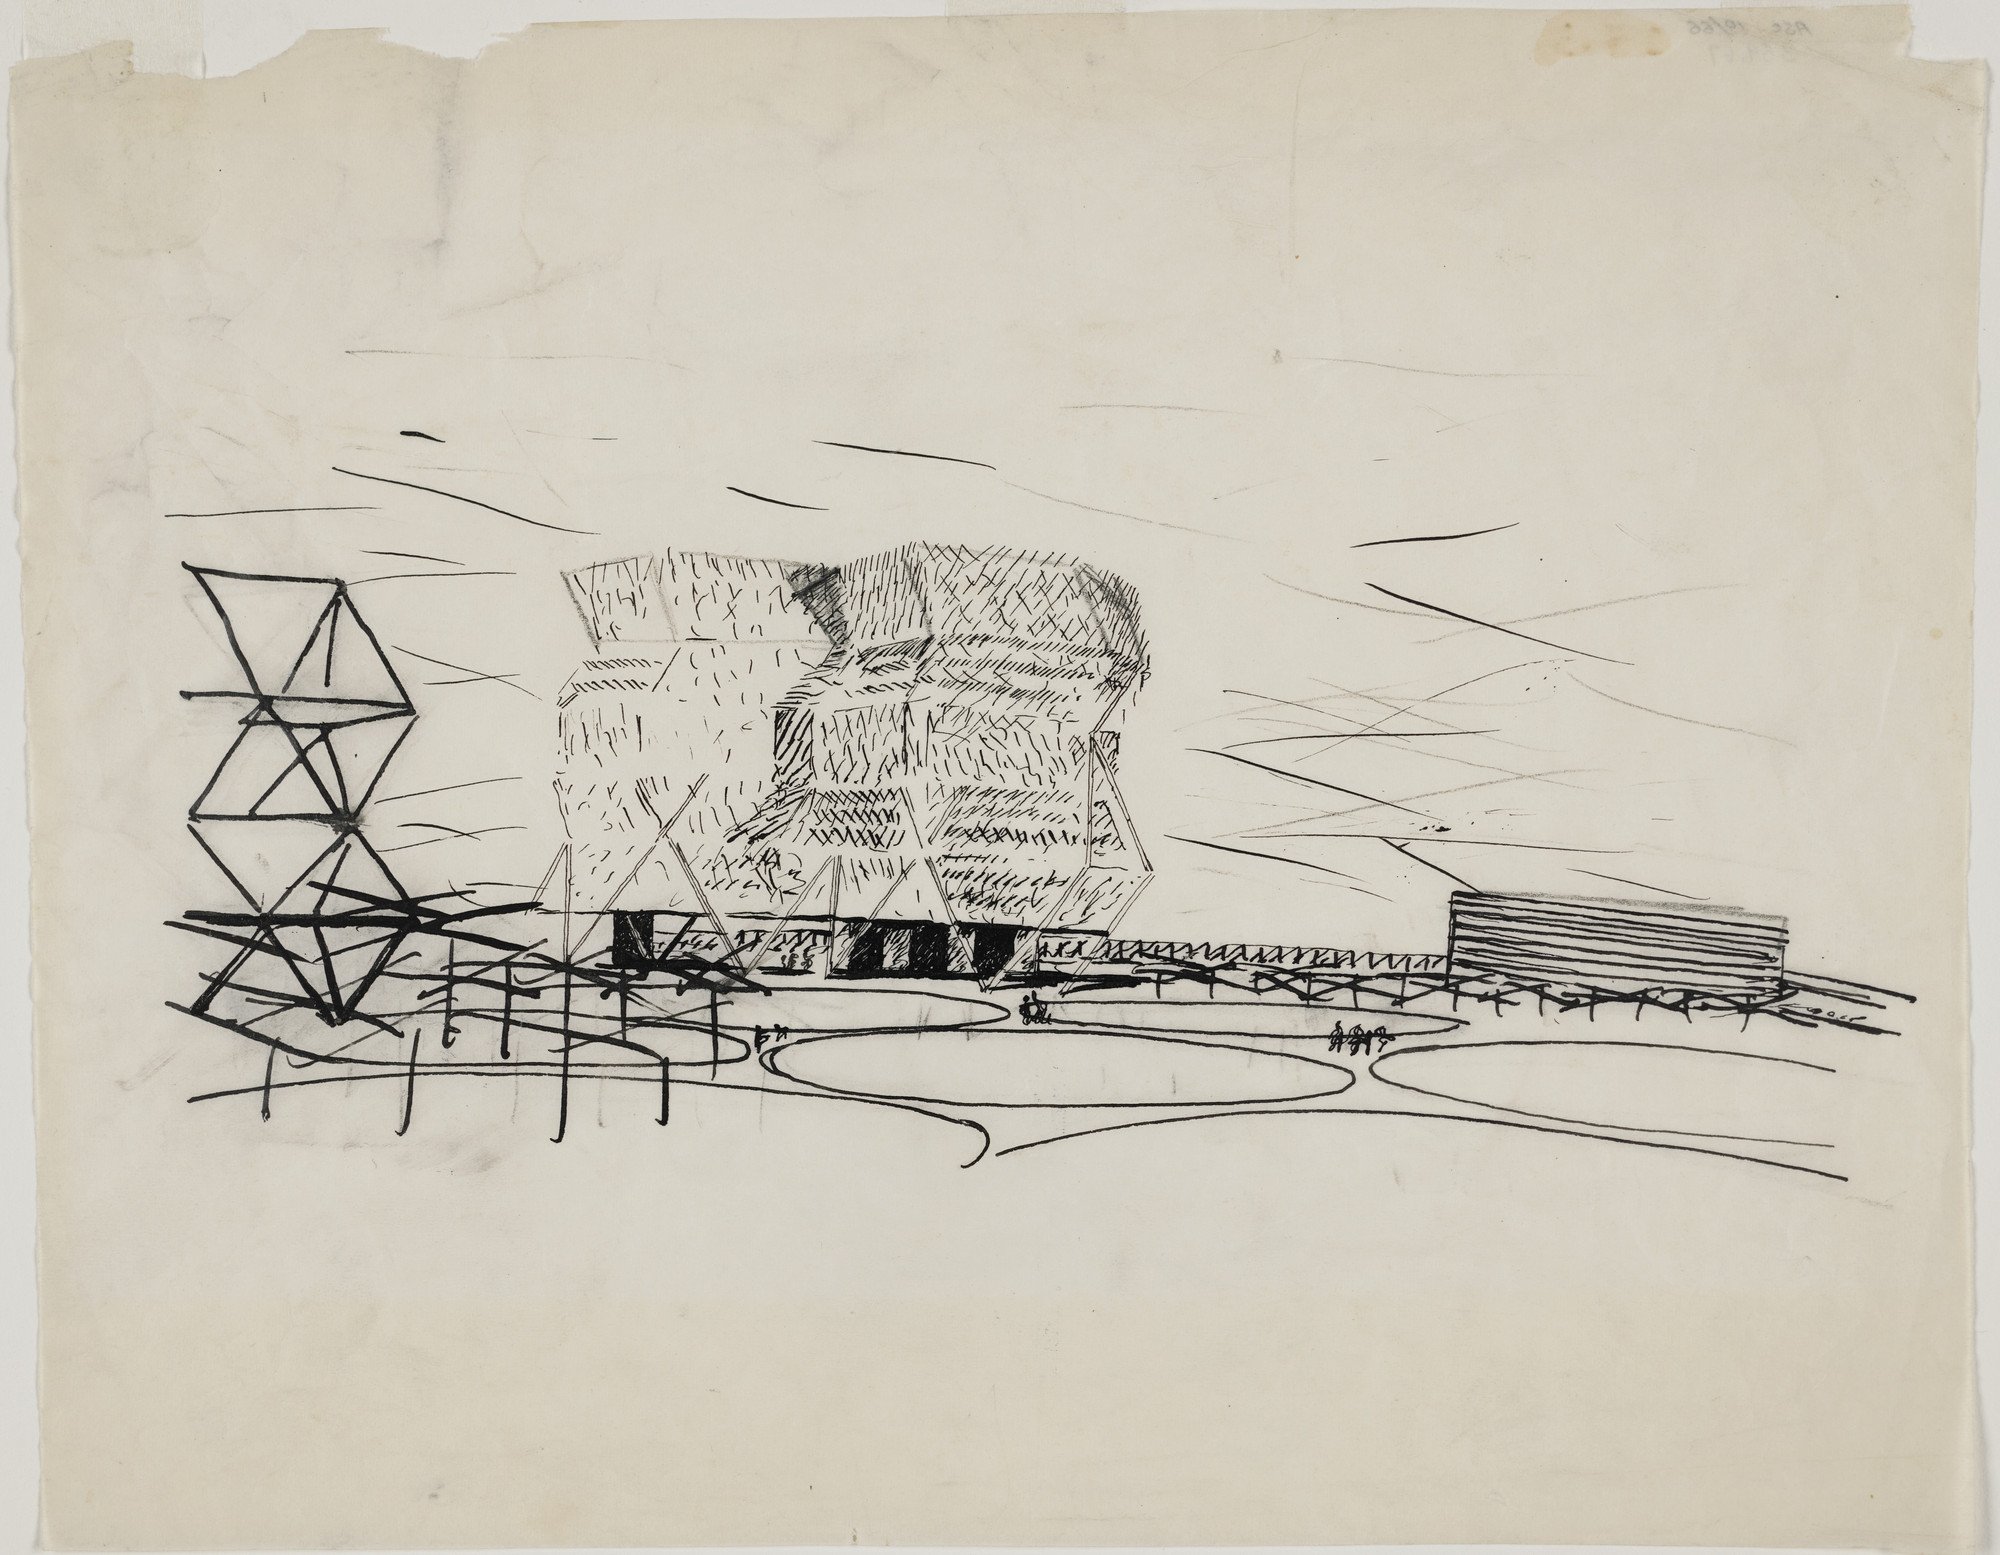 Louis I. Kahn. City Tower, project, Philadelphia, Pennsylvania, Perspective. 1952-53